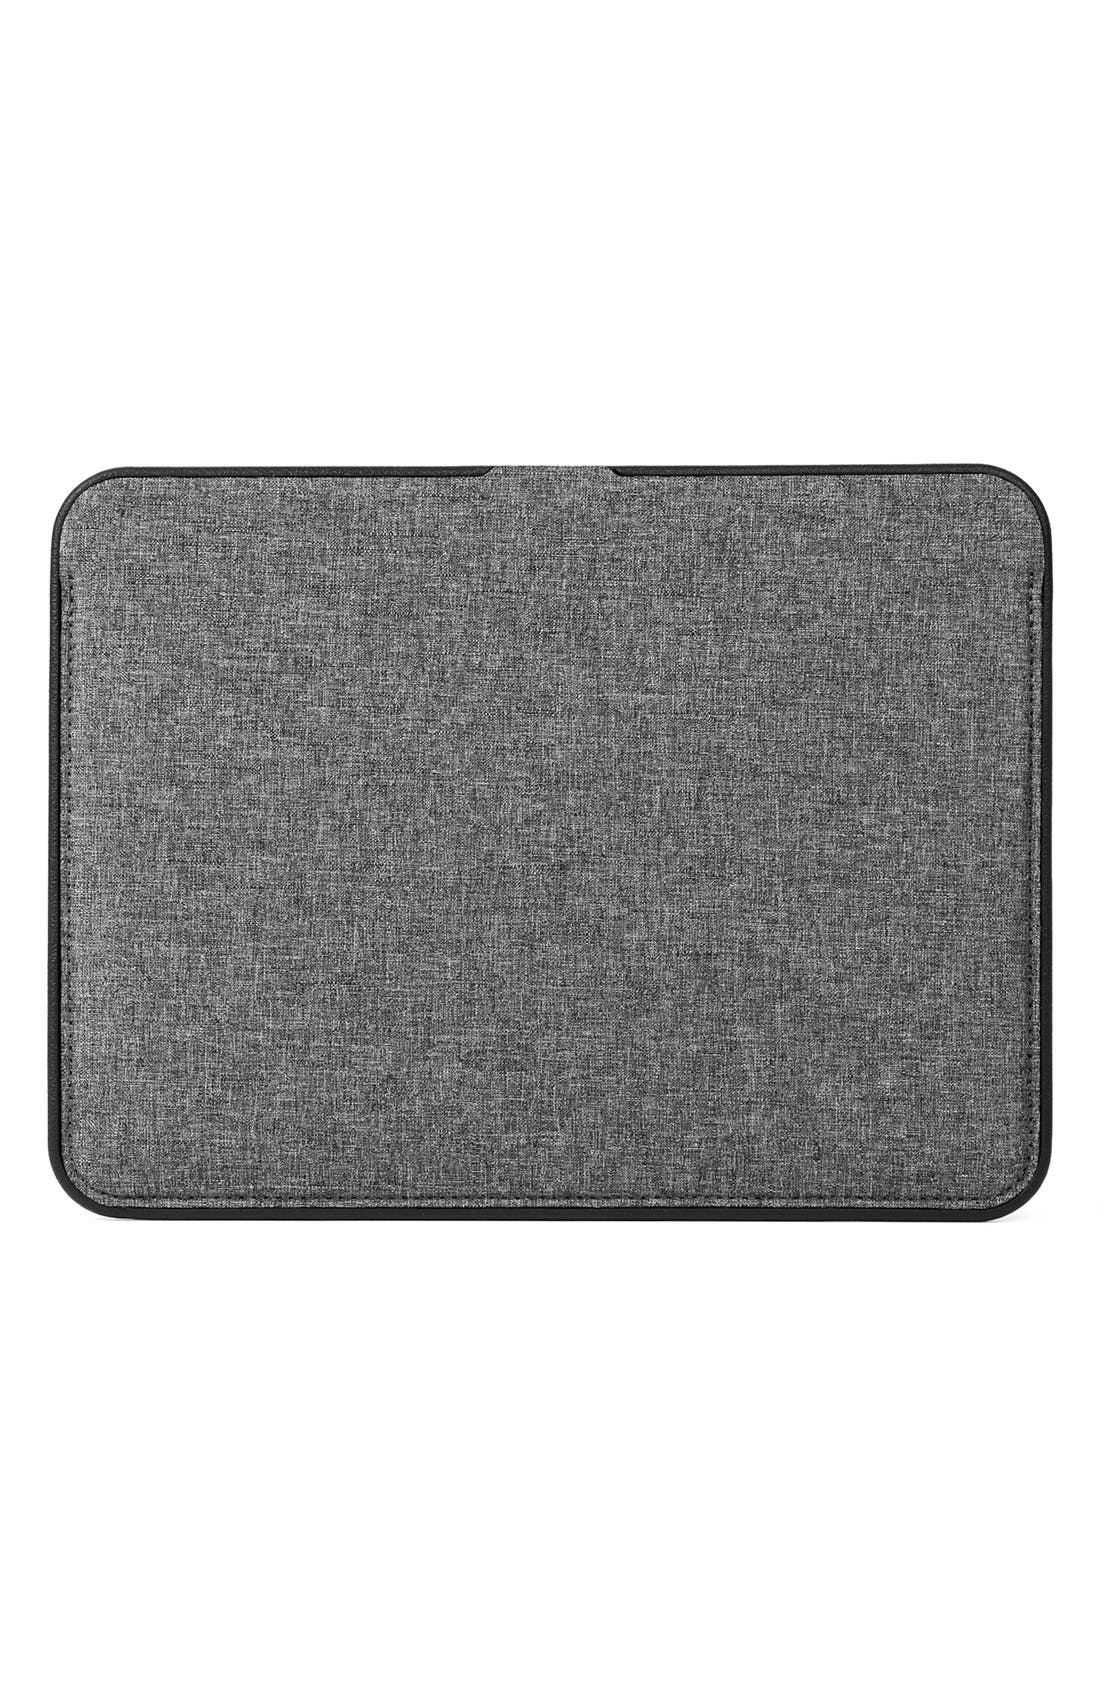 Alternate Image 2  - Incase Designs 'Icon' MacBook Air Laptop Sleeve (13 Inch)